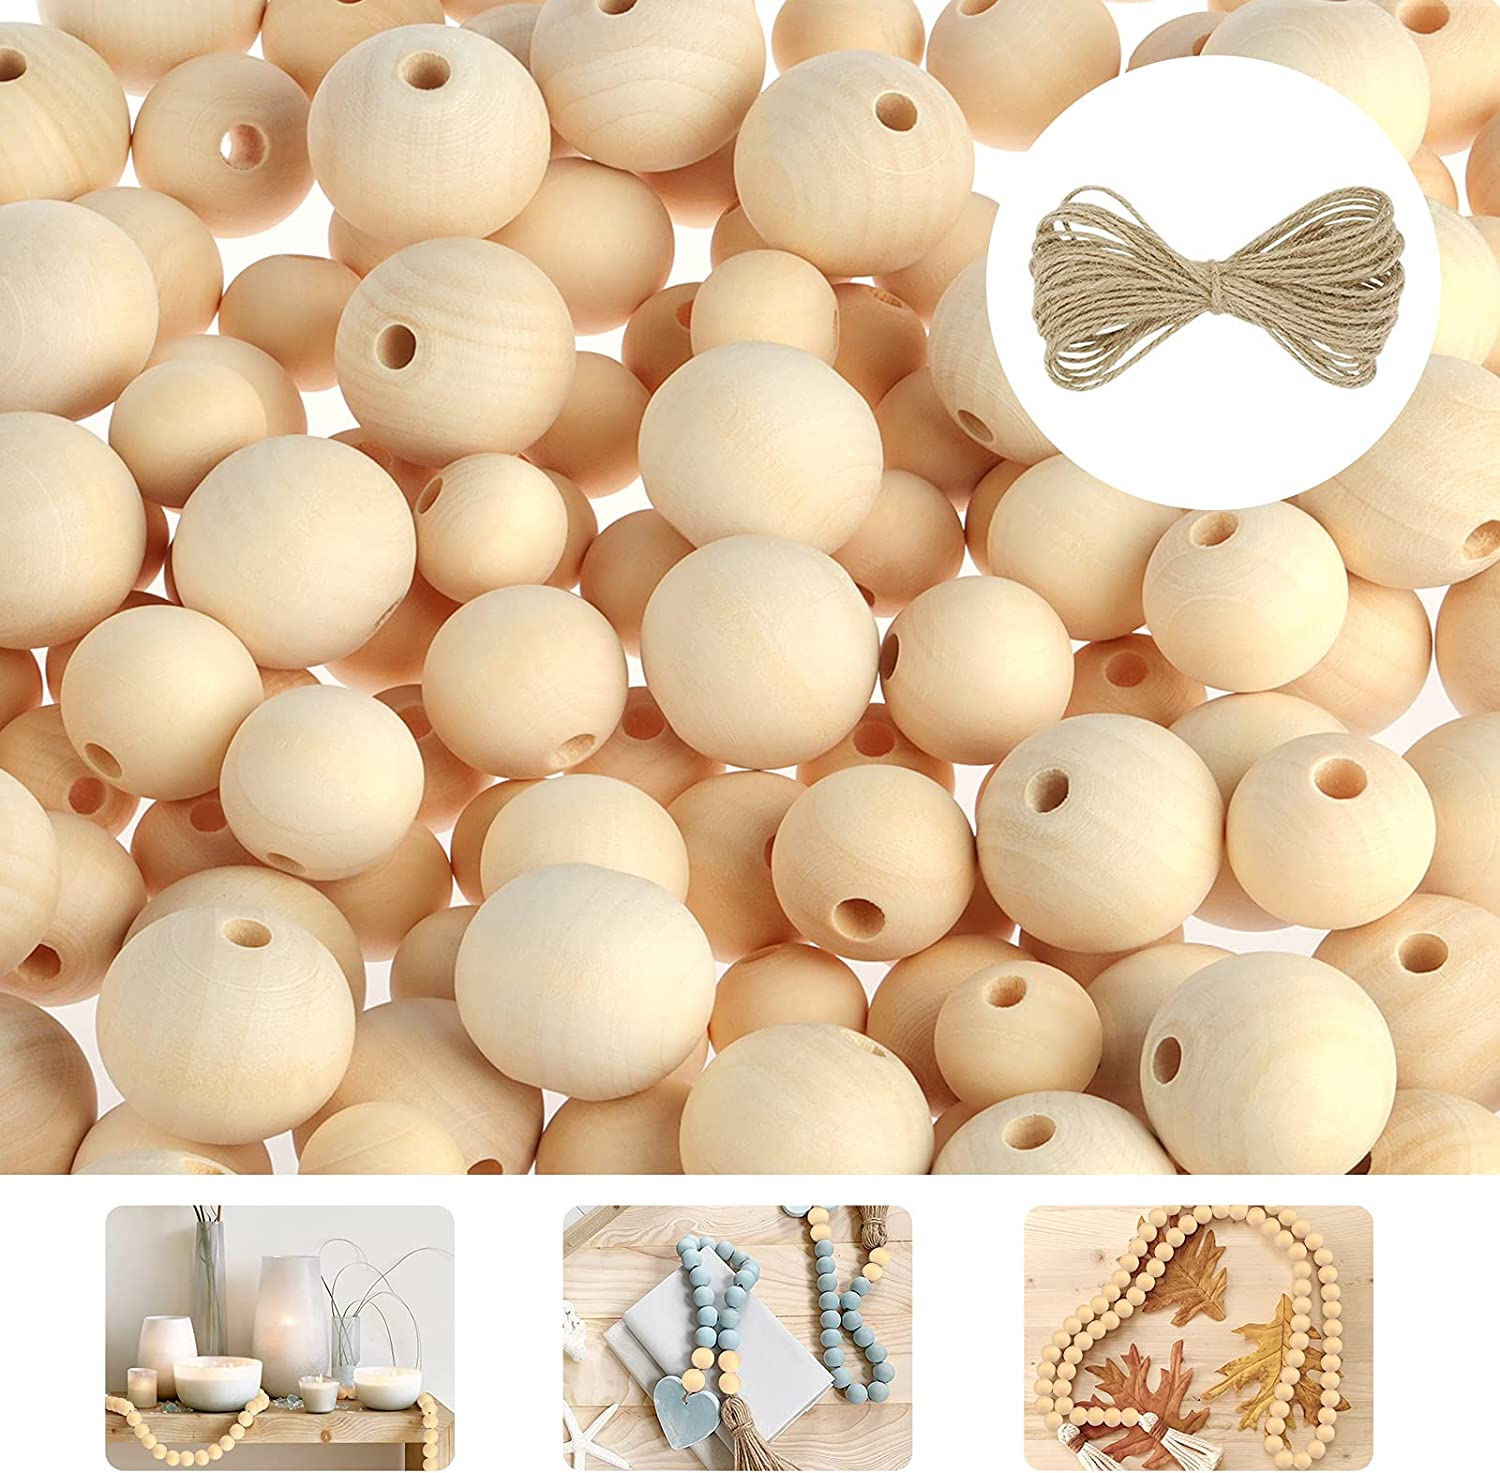 Fuyit 200Pcs Wooden Beads 3 Sizes 20mm 25mm Large-scale sale Natural 30mm New popularity Unfini